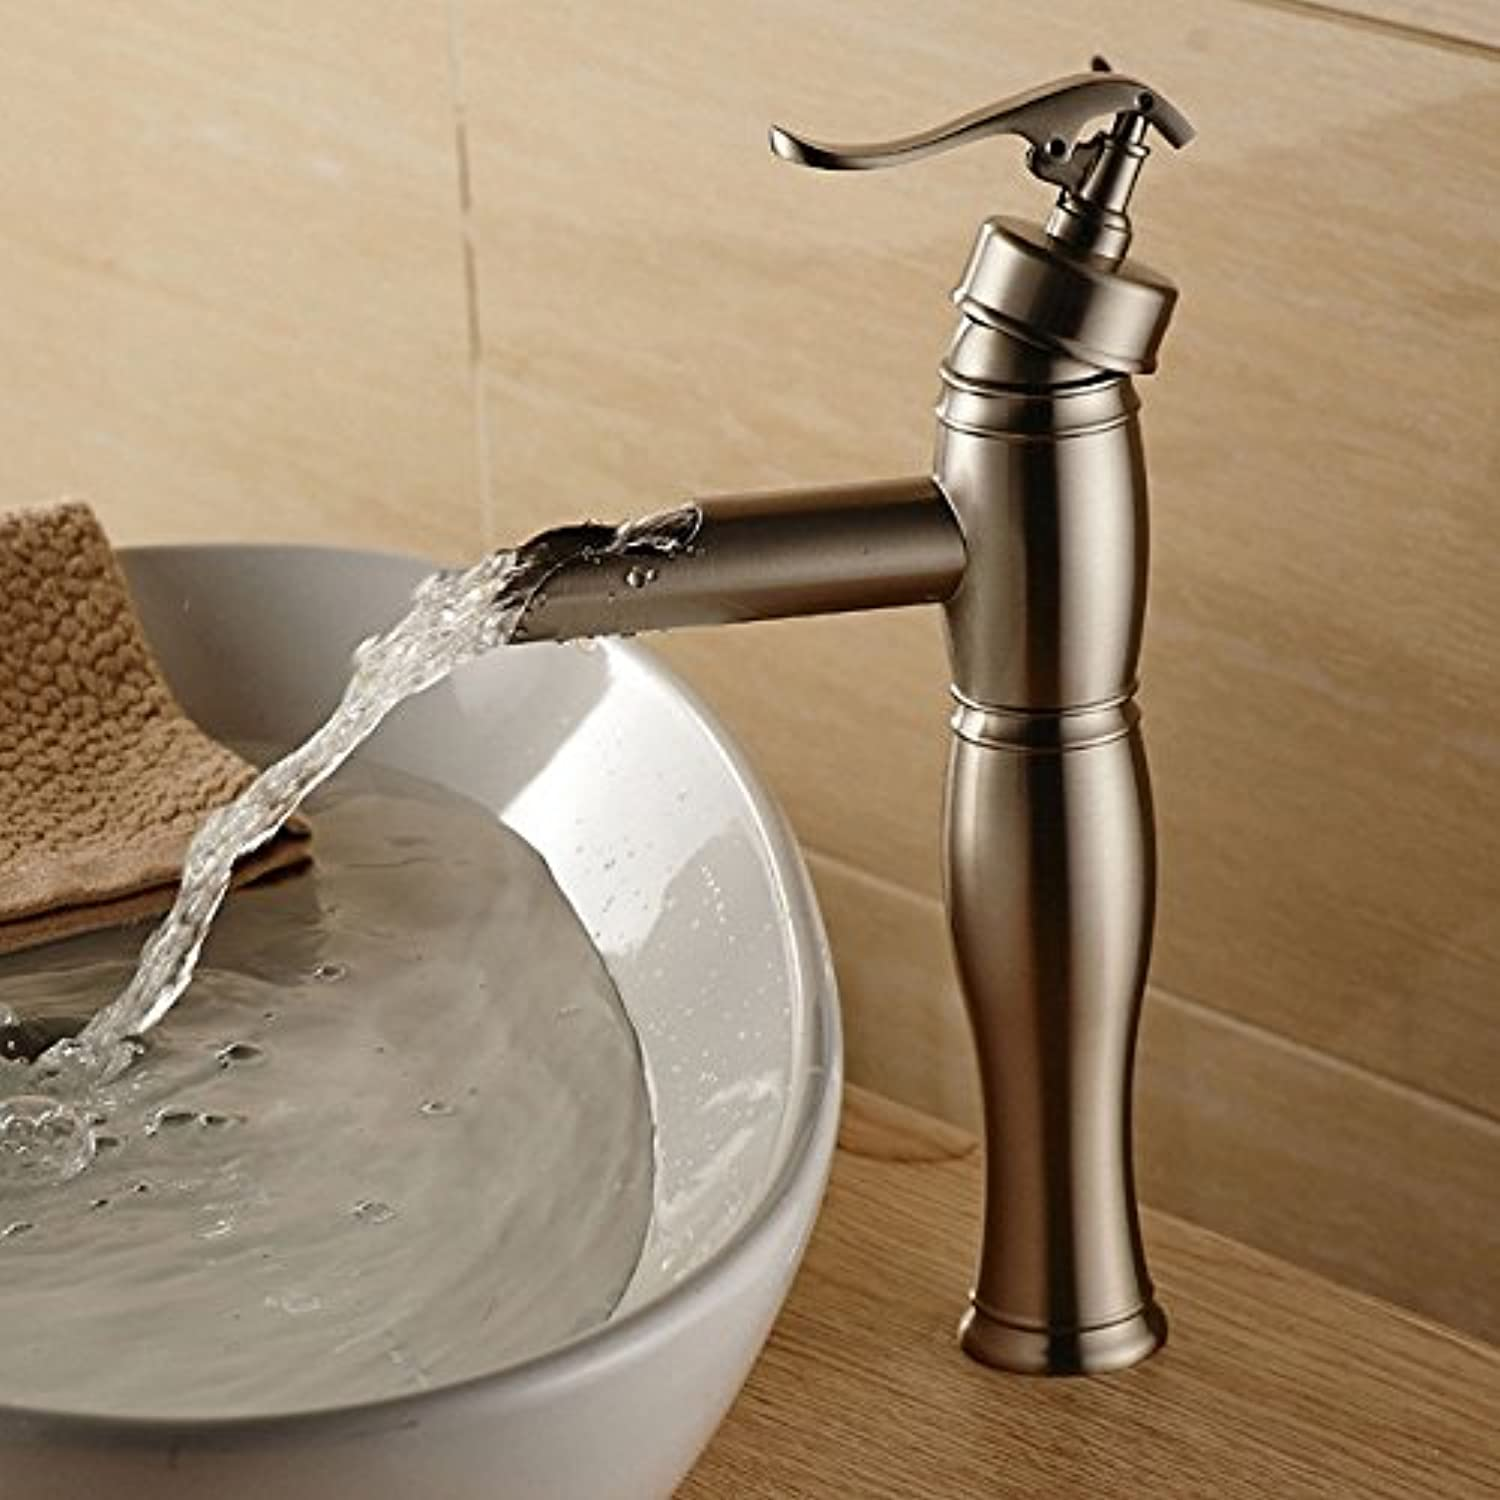 Hlluya Professional Sink Mixer Tap Kitchen Faucet The sink faucet basin wash basin full copper single hole hot and cold brushed nickel waterfall faucet Mixer Taps